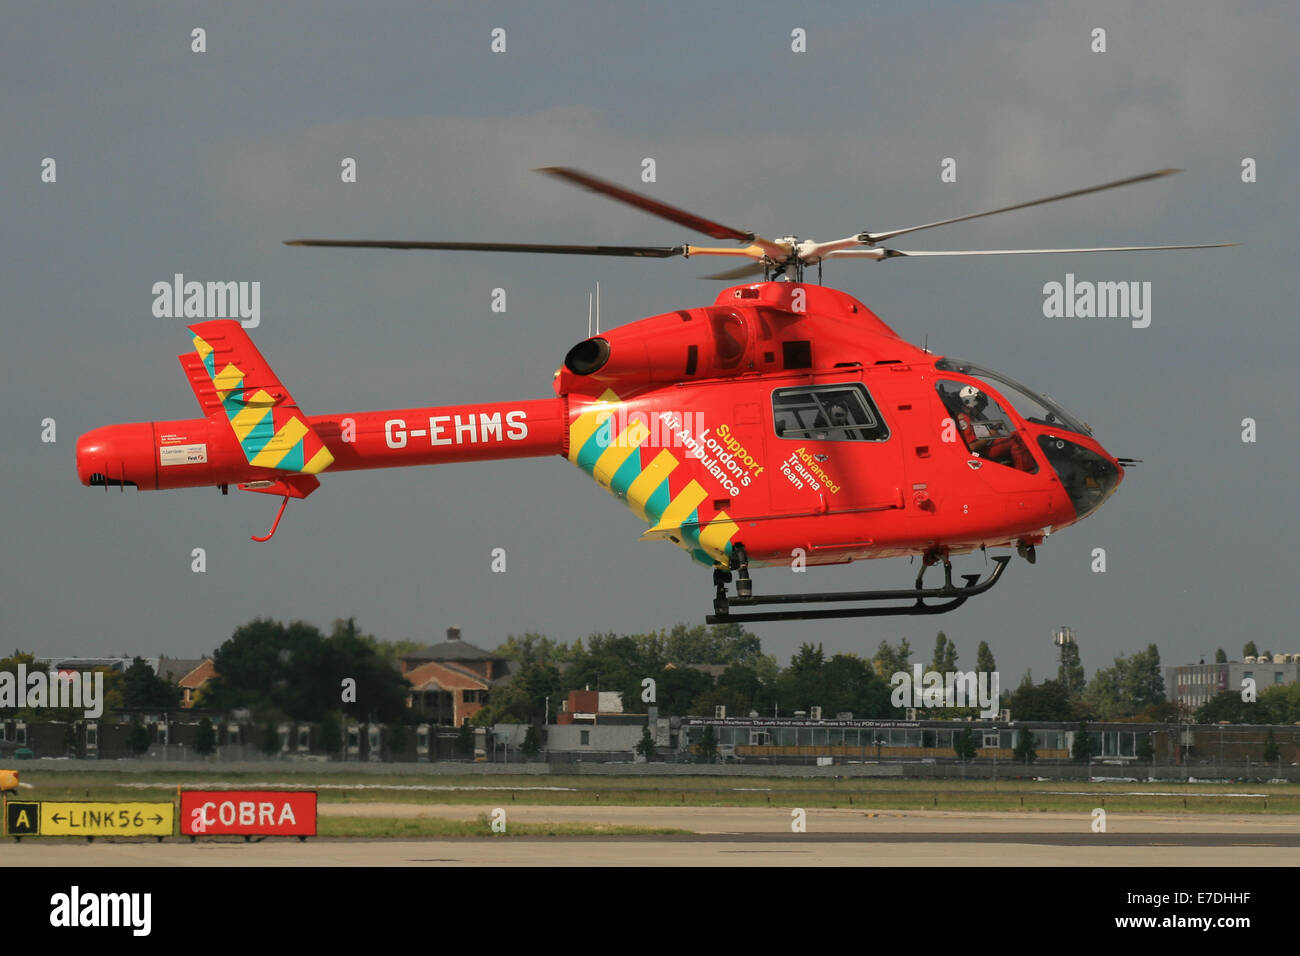 MD902 EXPLORER AIR AMBULANCE LONDON - Stock Image